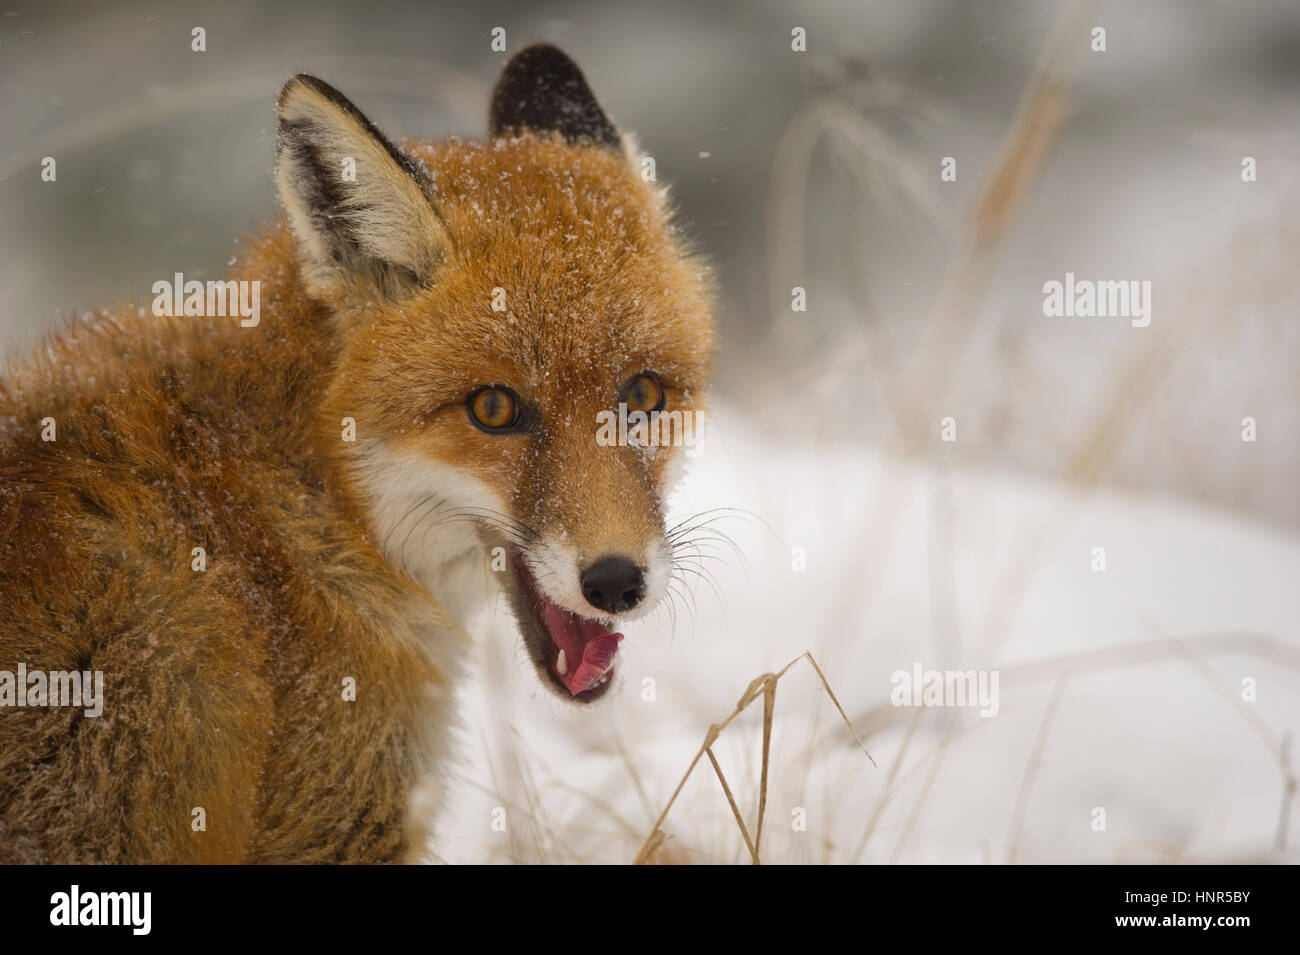 close up red fox portrait in the winter on snowy ground - Stock Image